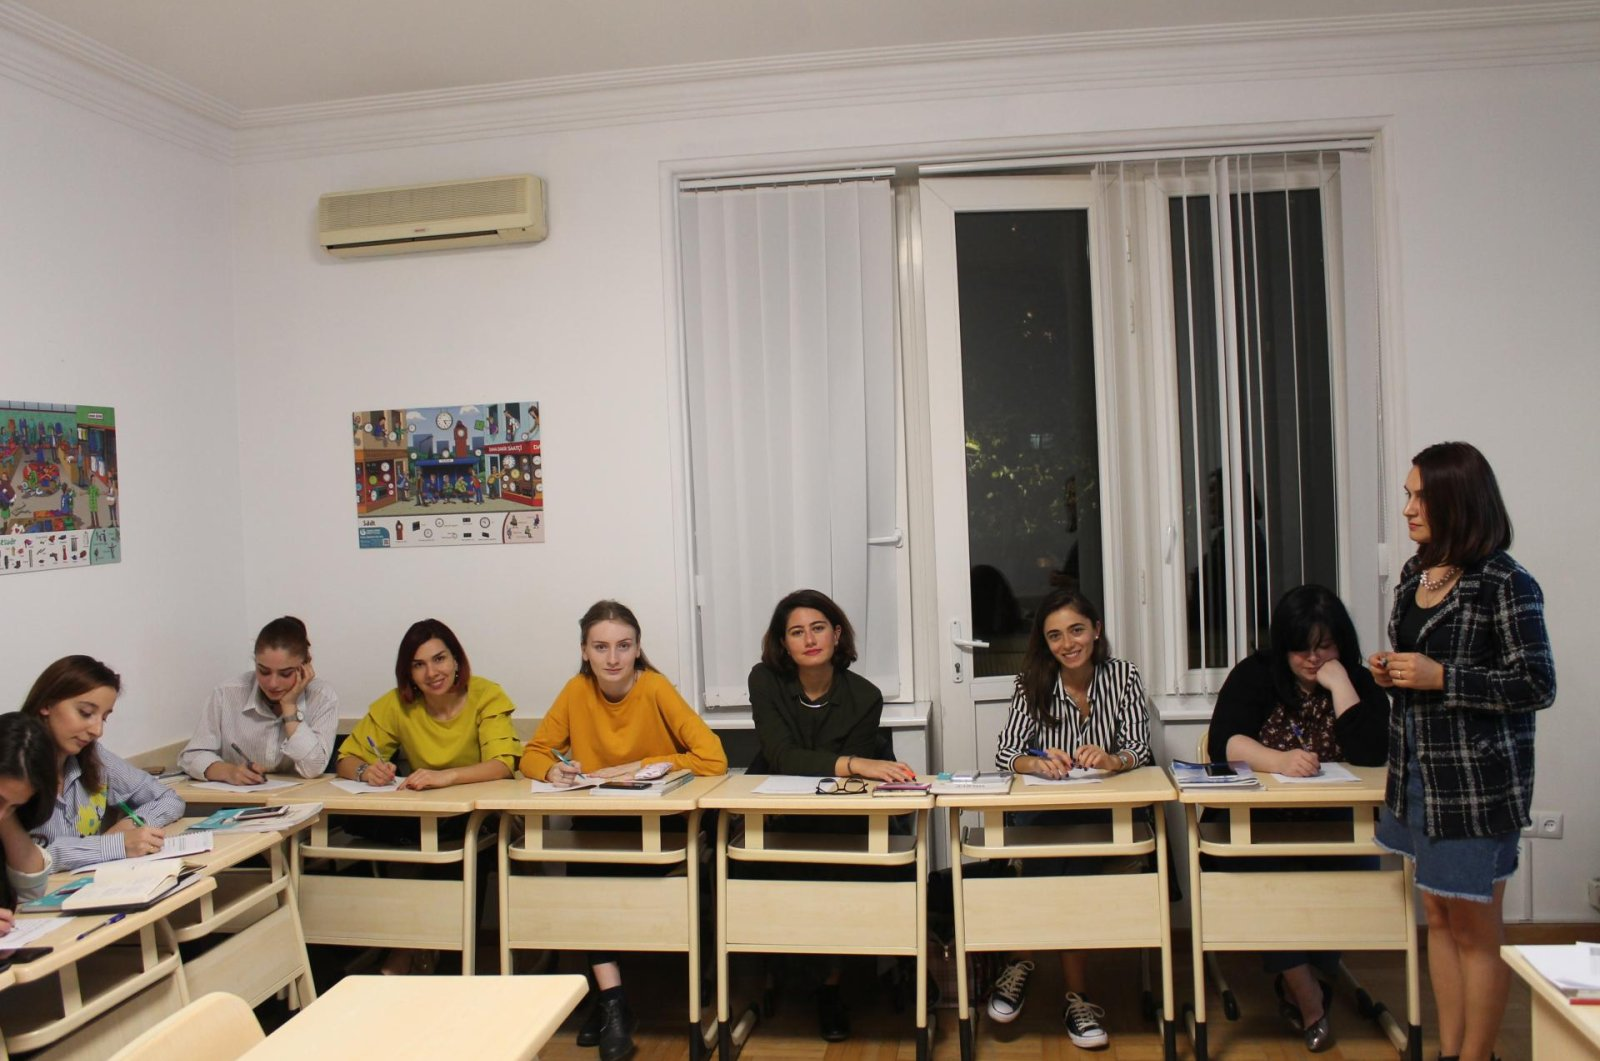 One of the classrooms of the Yunus Emre Institute, where students came together to learn Turkish before the coronavirus outbreak began, Tbilisi, Georgia. (Photo courtesy of Yunus Emre Institute)